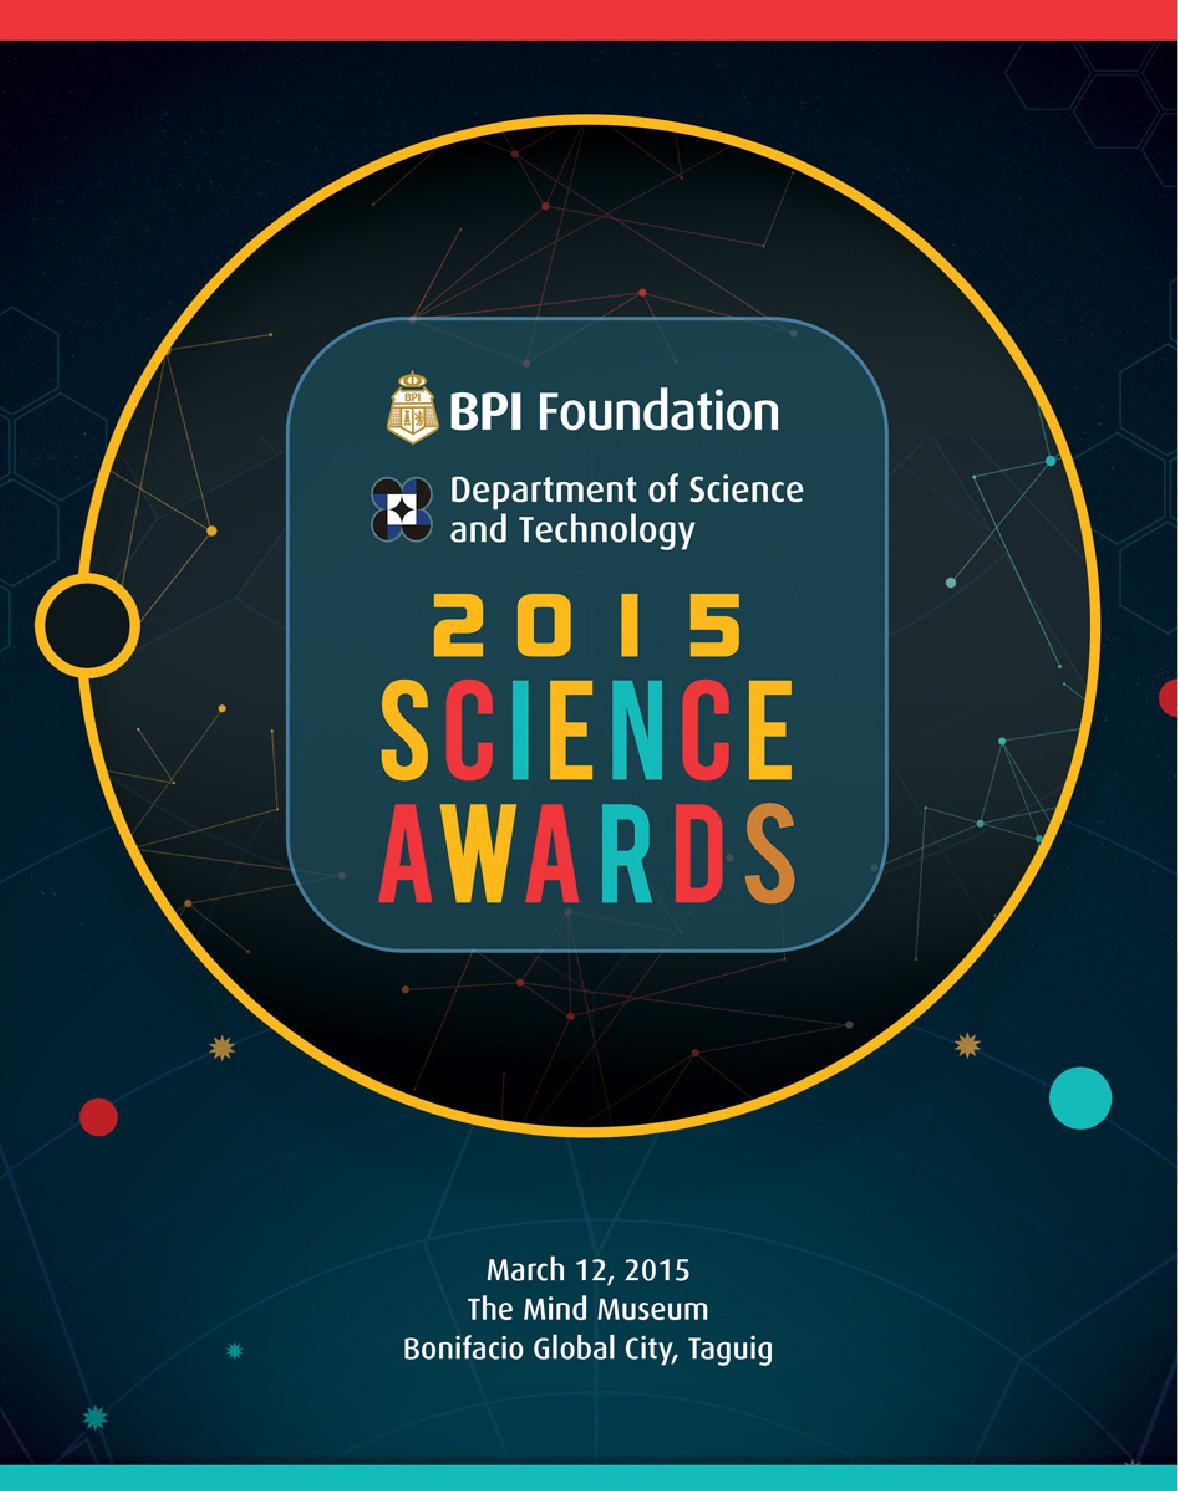 BPI DOST 2015 Science Awards by Vitalstrats Creative